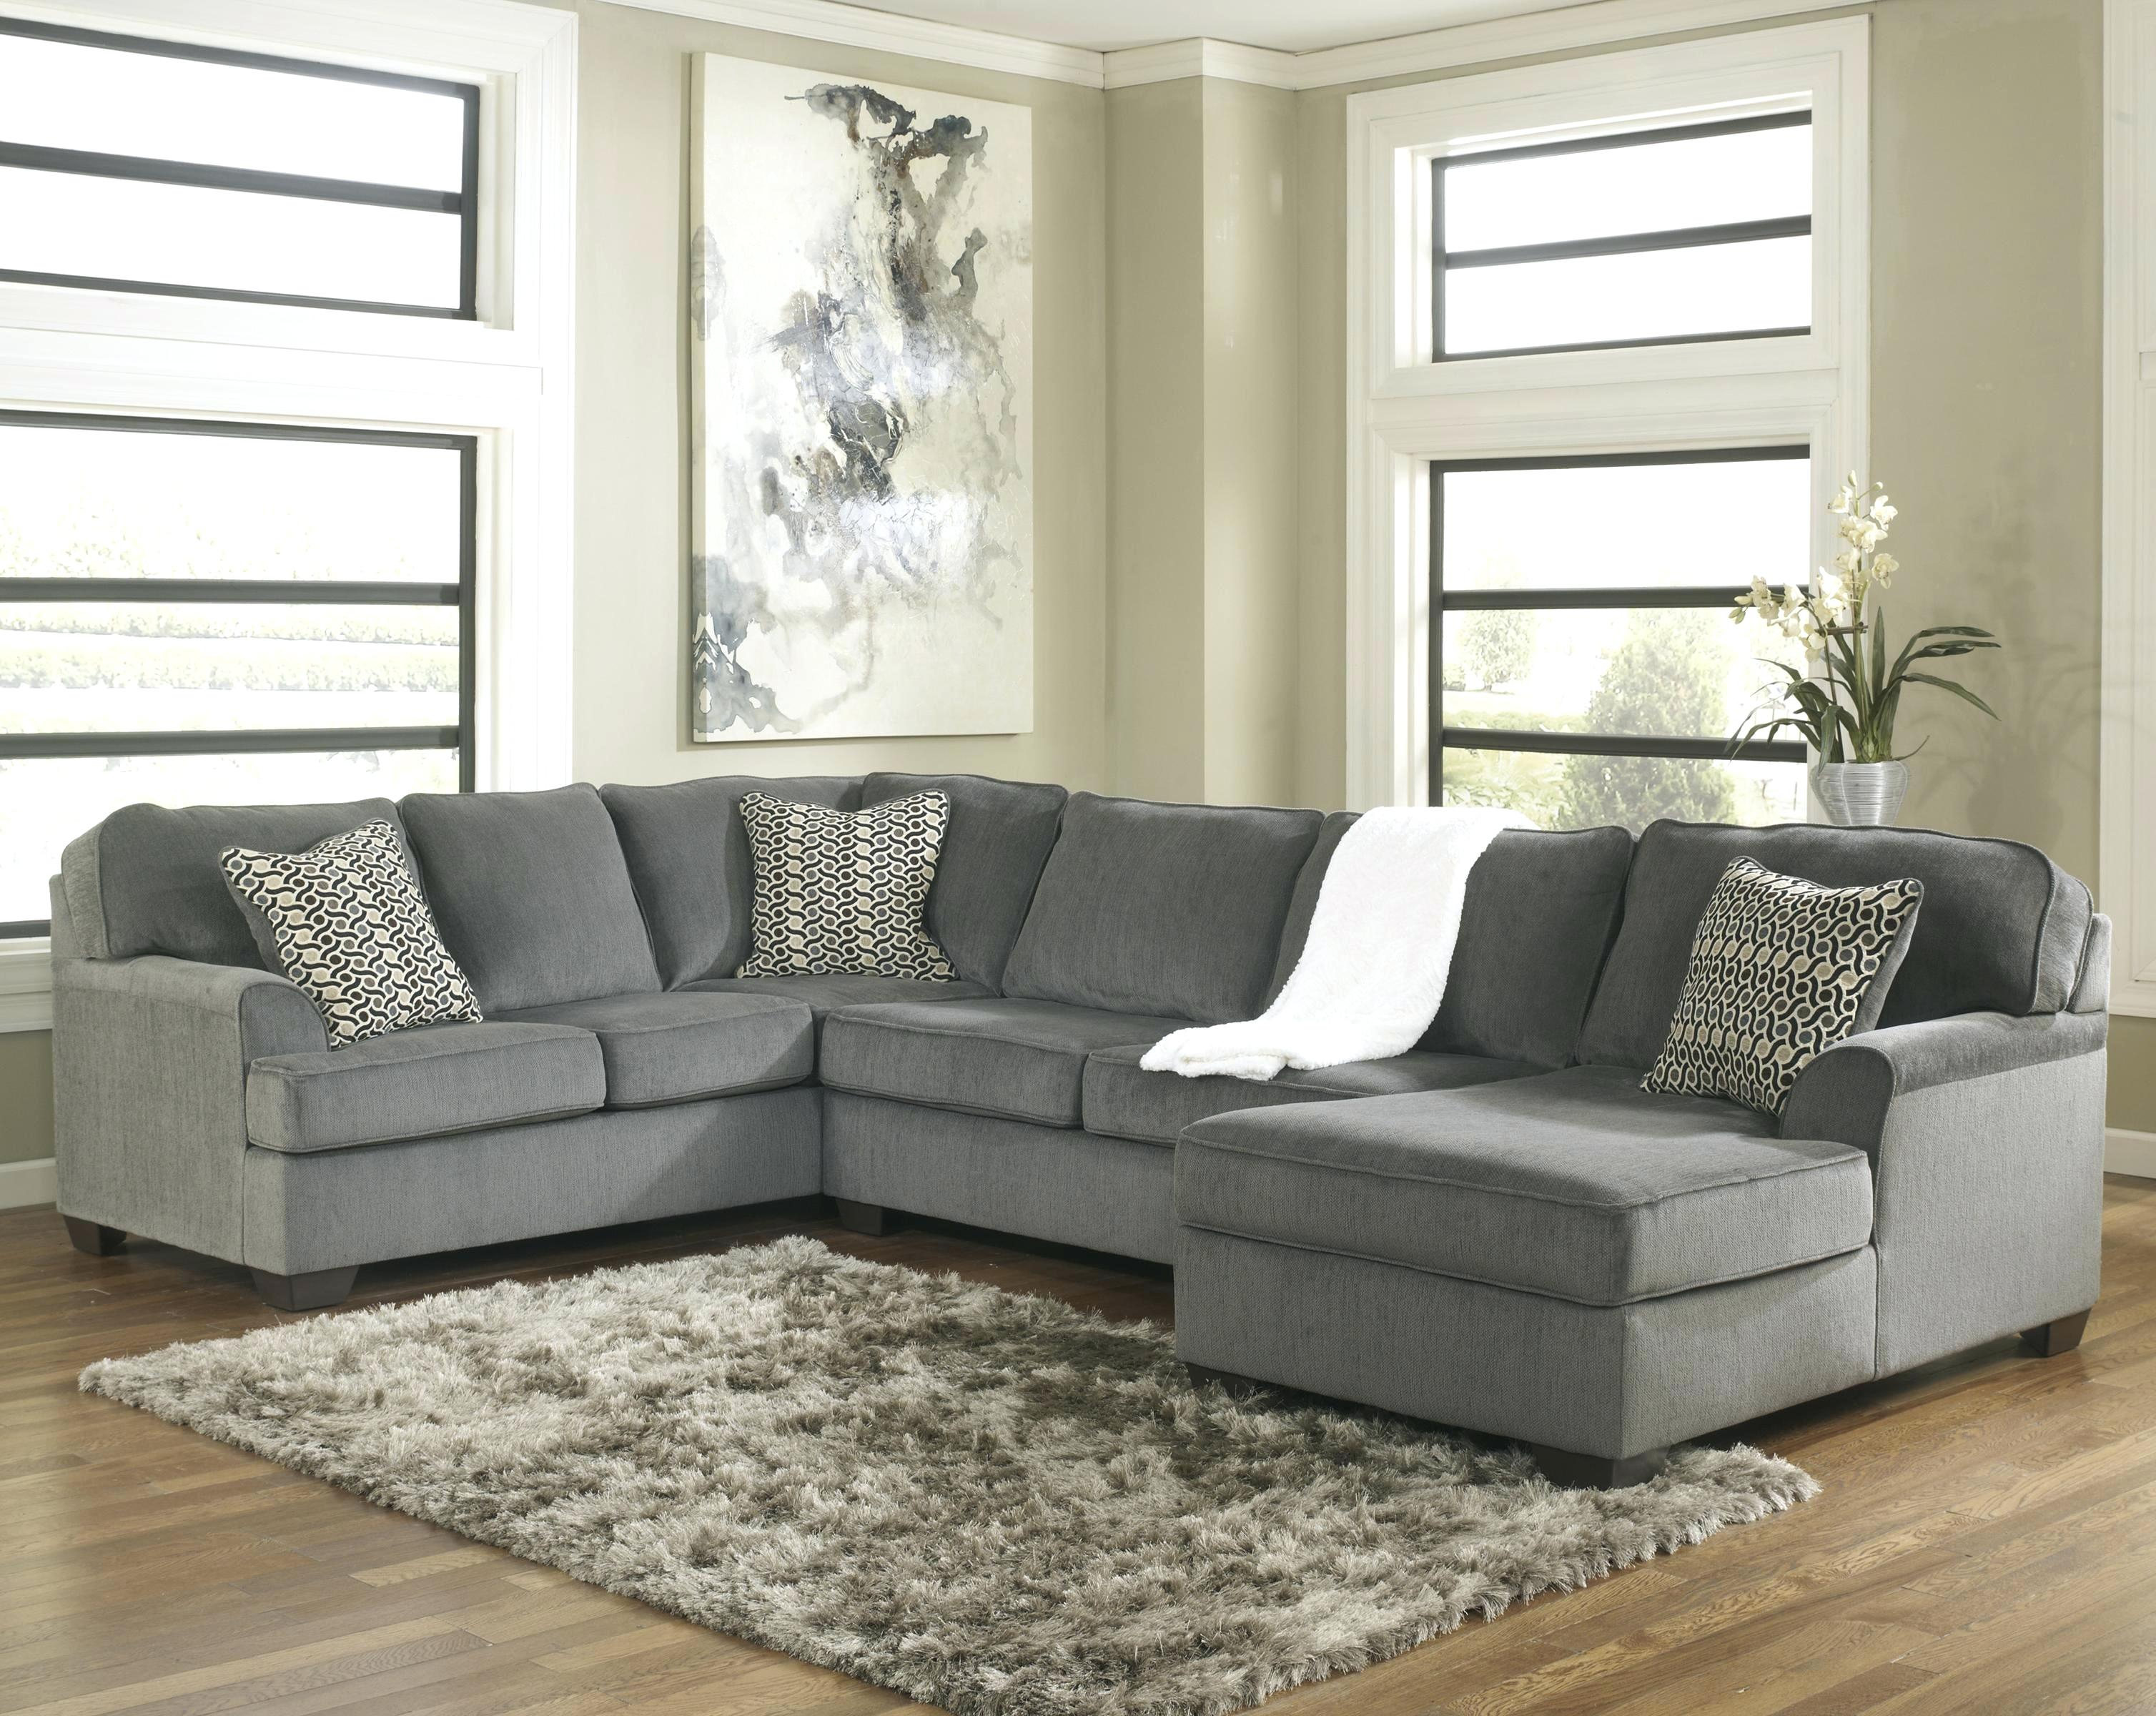 Epic Ashley Furniture Locations Indiana Furniture Mocha Sectional Ashley for Fresh Ashley Furniture Locations